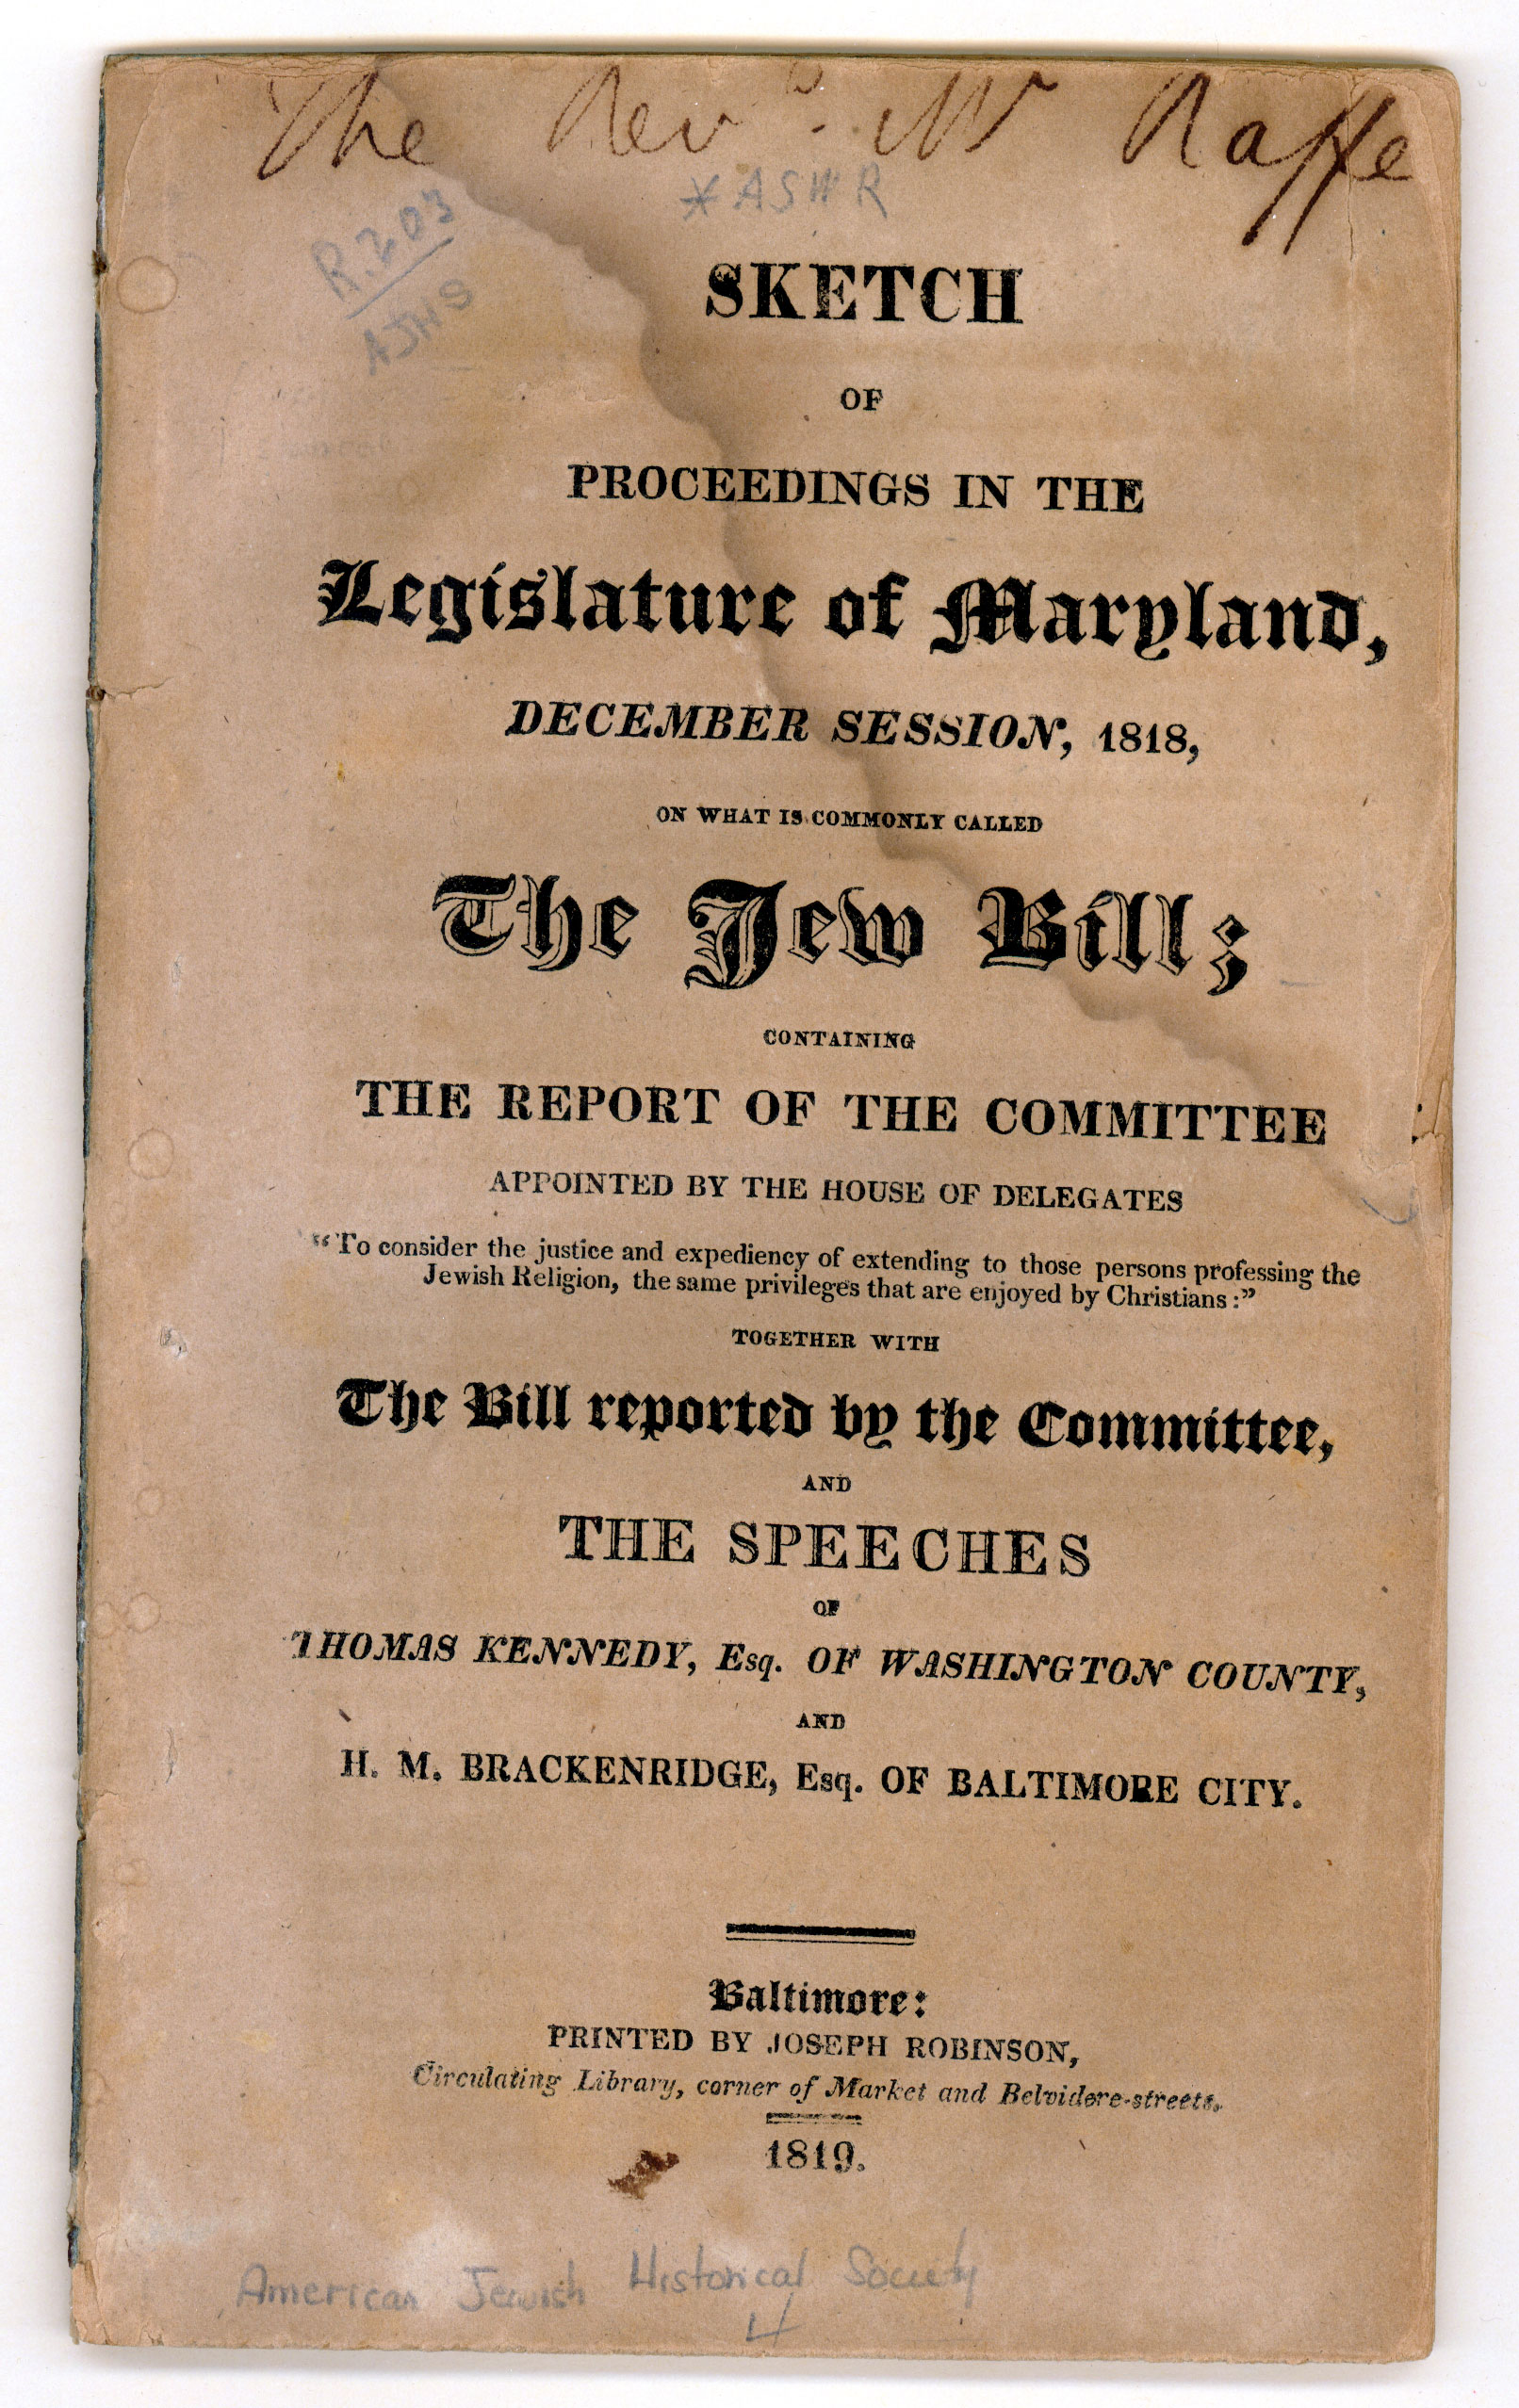 Sketch of proceedings in the legislature of Maryland, December session, 1818, on what is commonly called the Jew bill.